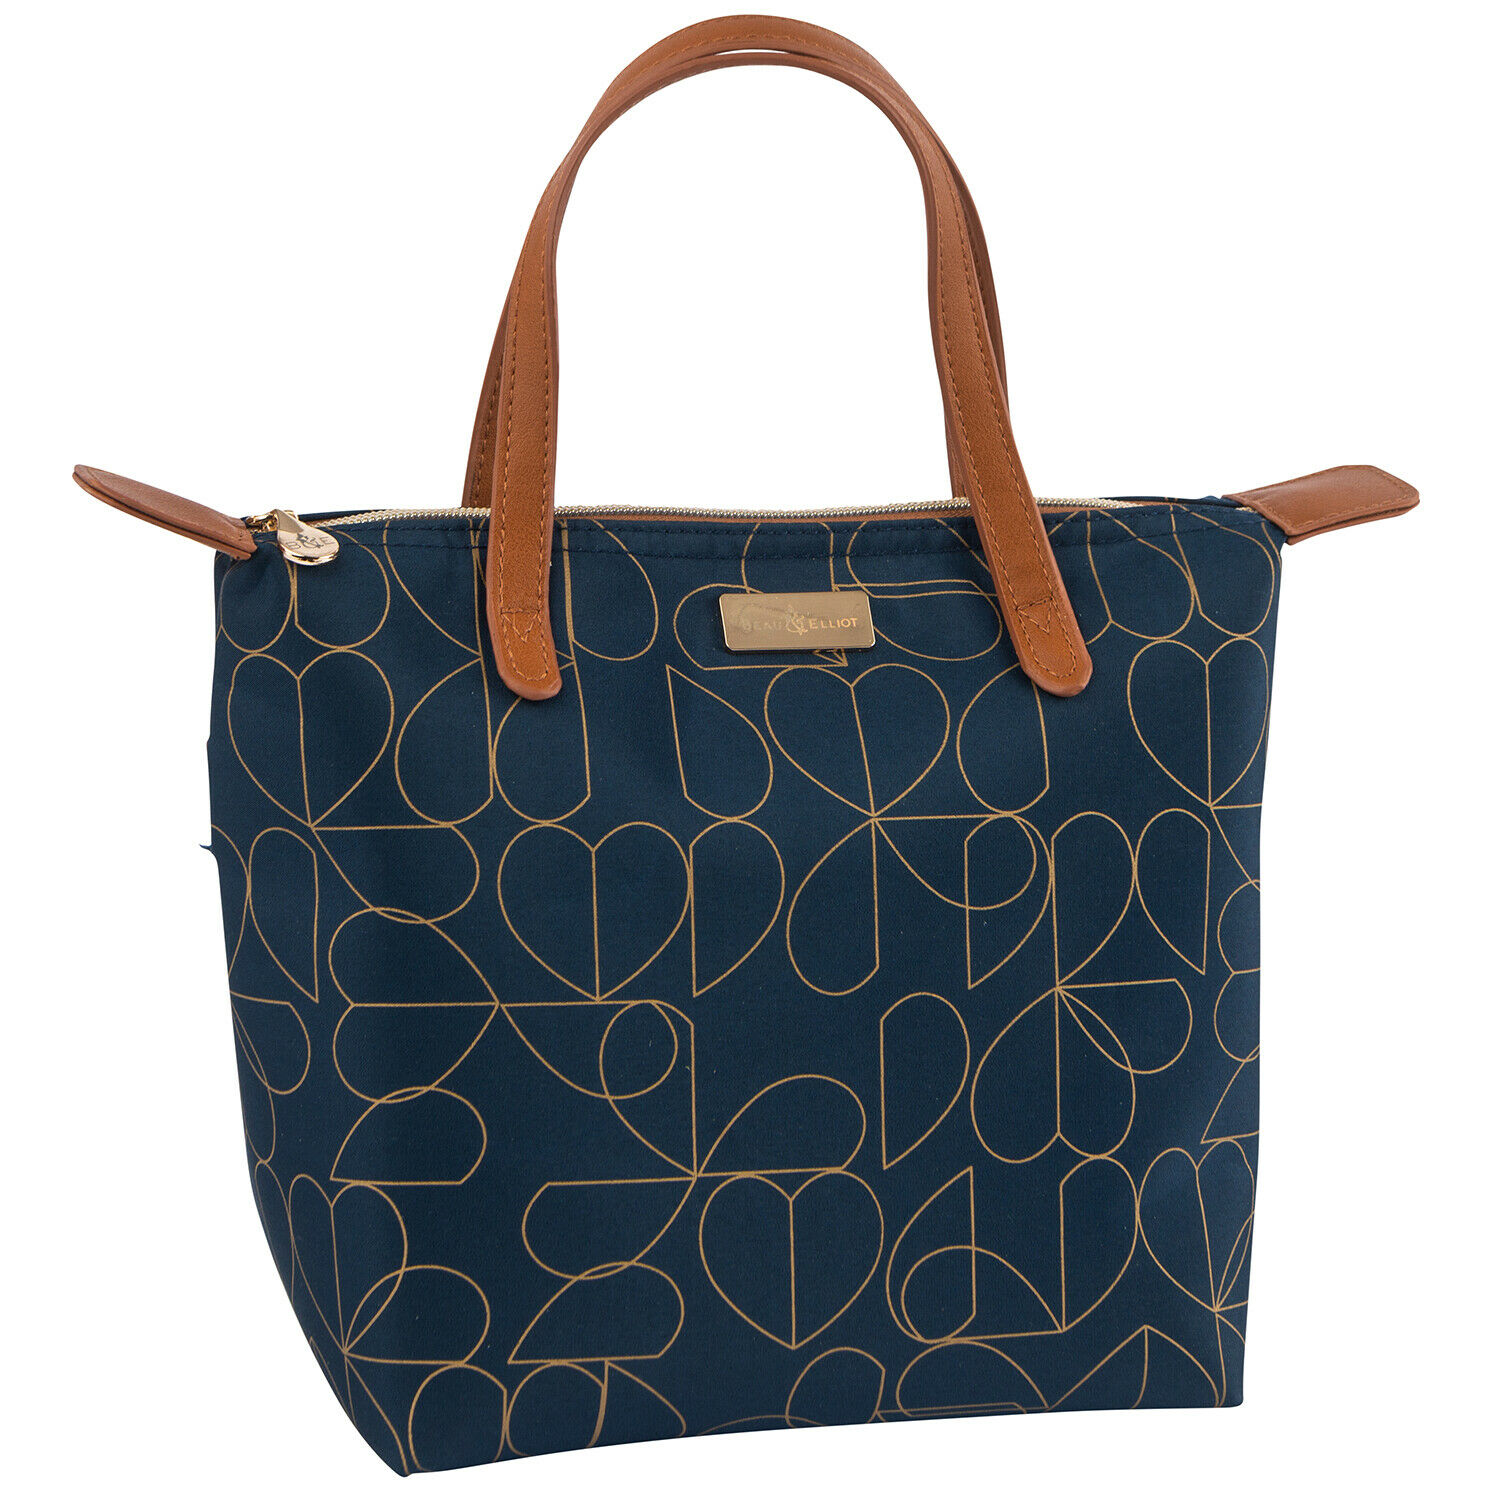 Beau & Elliot – Navy 7L Luxury Insulated Lunch Tote/Bag